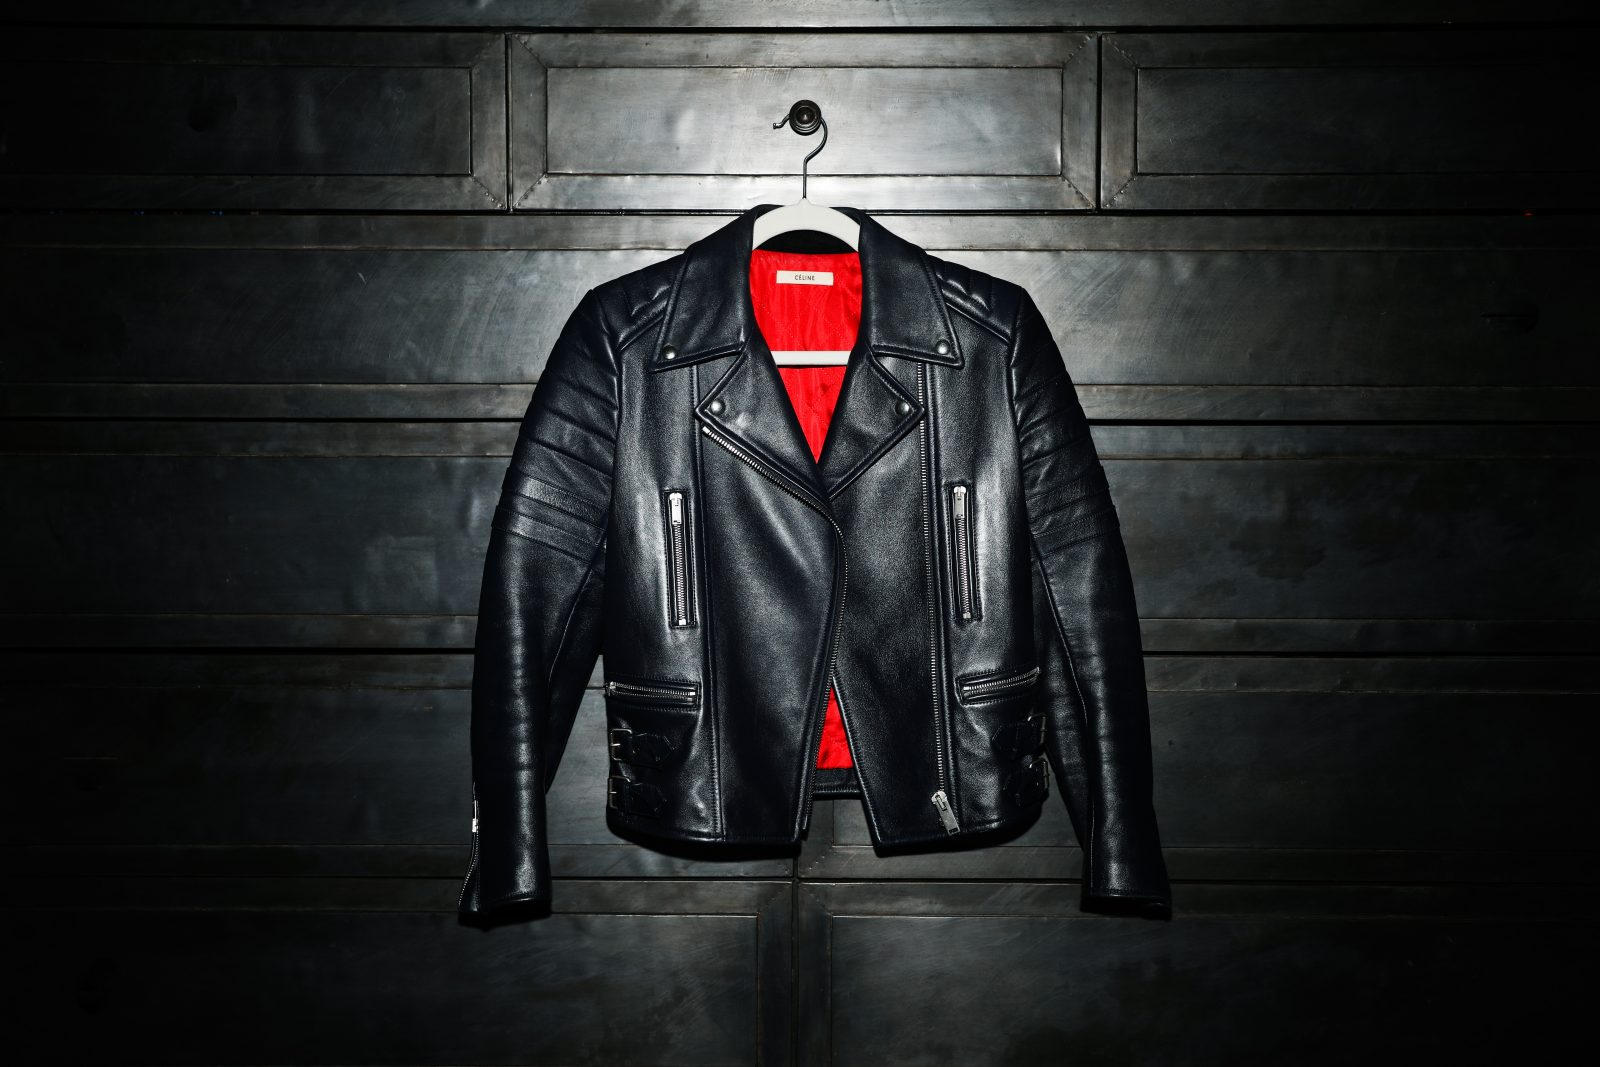 Greaser aesthetic black leather jacket with red lining